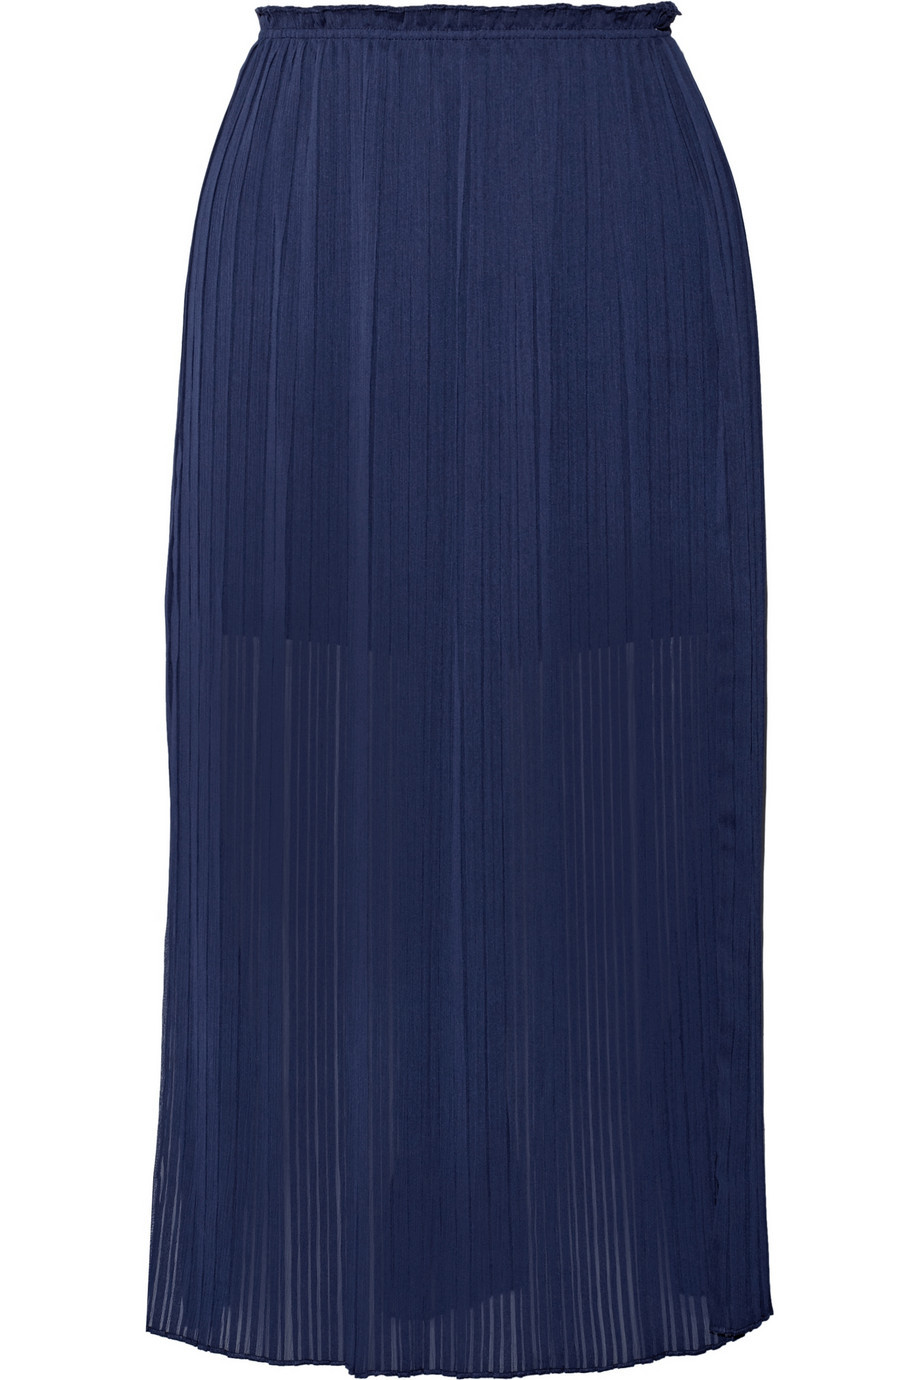 Steele Pleated Chiffon Skirt Storm Blue - pattern: plain; style: straight; waist: high rise; predominant colour: navy; length: just above the knee; fibres: polyester/polyamide - stretch; texture group: sheer fabrics/chiffon/organza etc.; fit: straight cut; pattern type: fabric; occasions: creative work; season: a/w 2015; wardrobe: basic